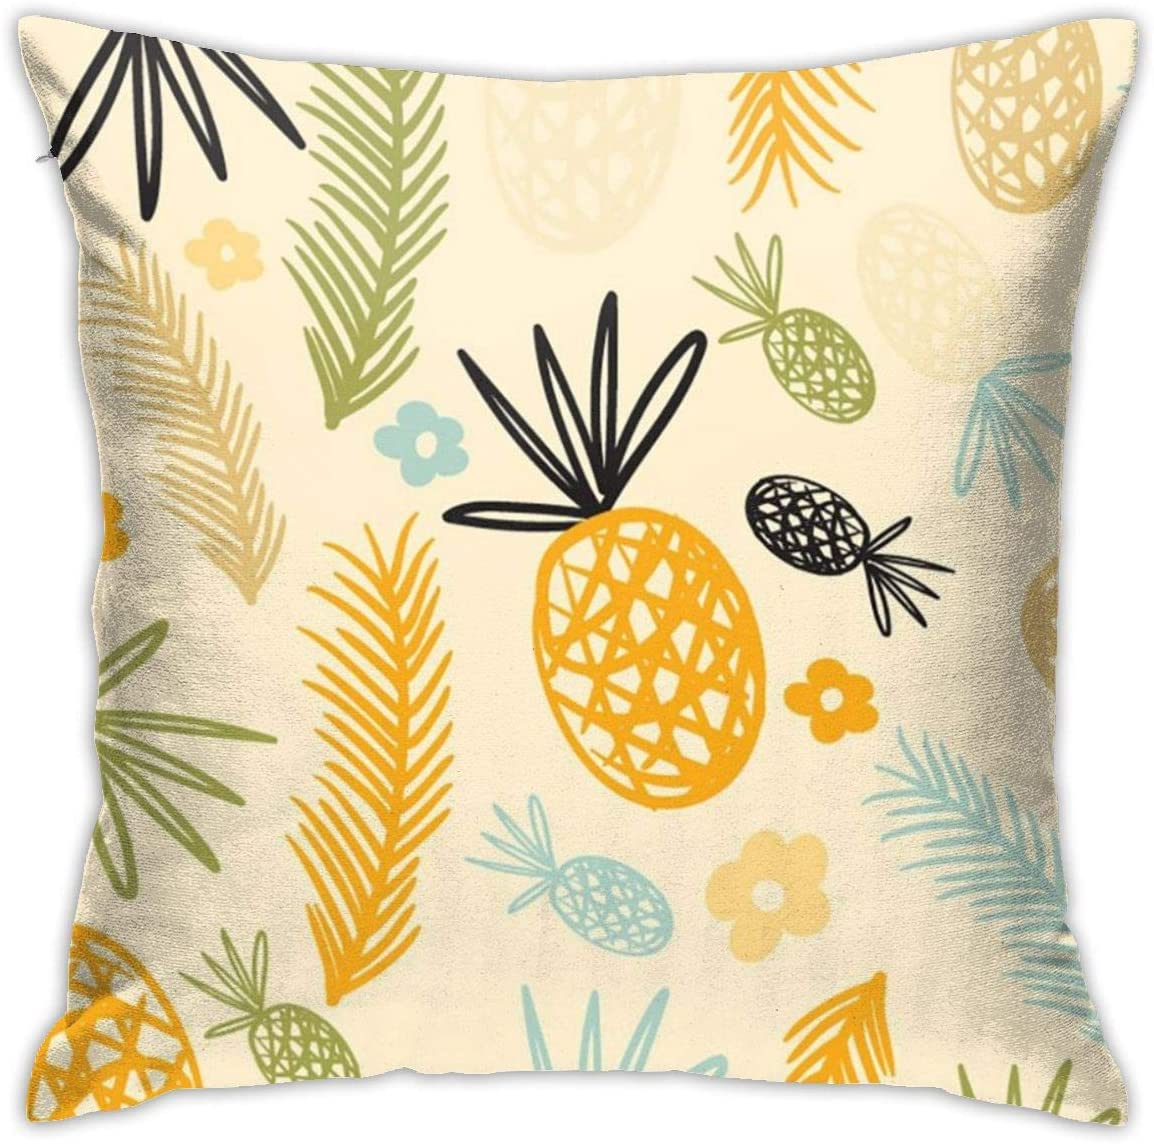 Aotenl Tropical Plants Pineapple Funnny (2) Personalized Customization Pillowcases,Machine Washable,Design,Hotel Quality Non Noisy,Home Essentials,Bedroom,Sofa,18 X 18